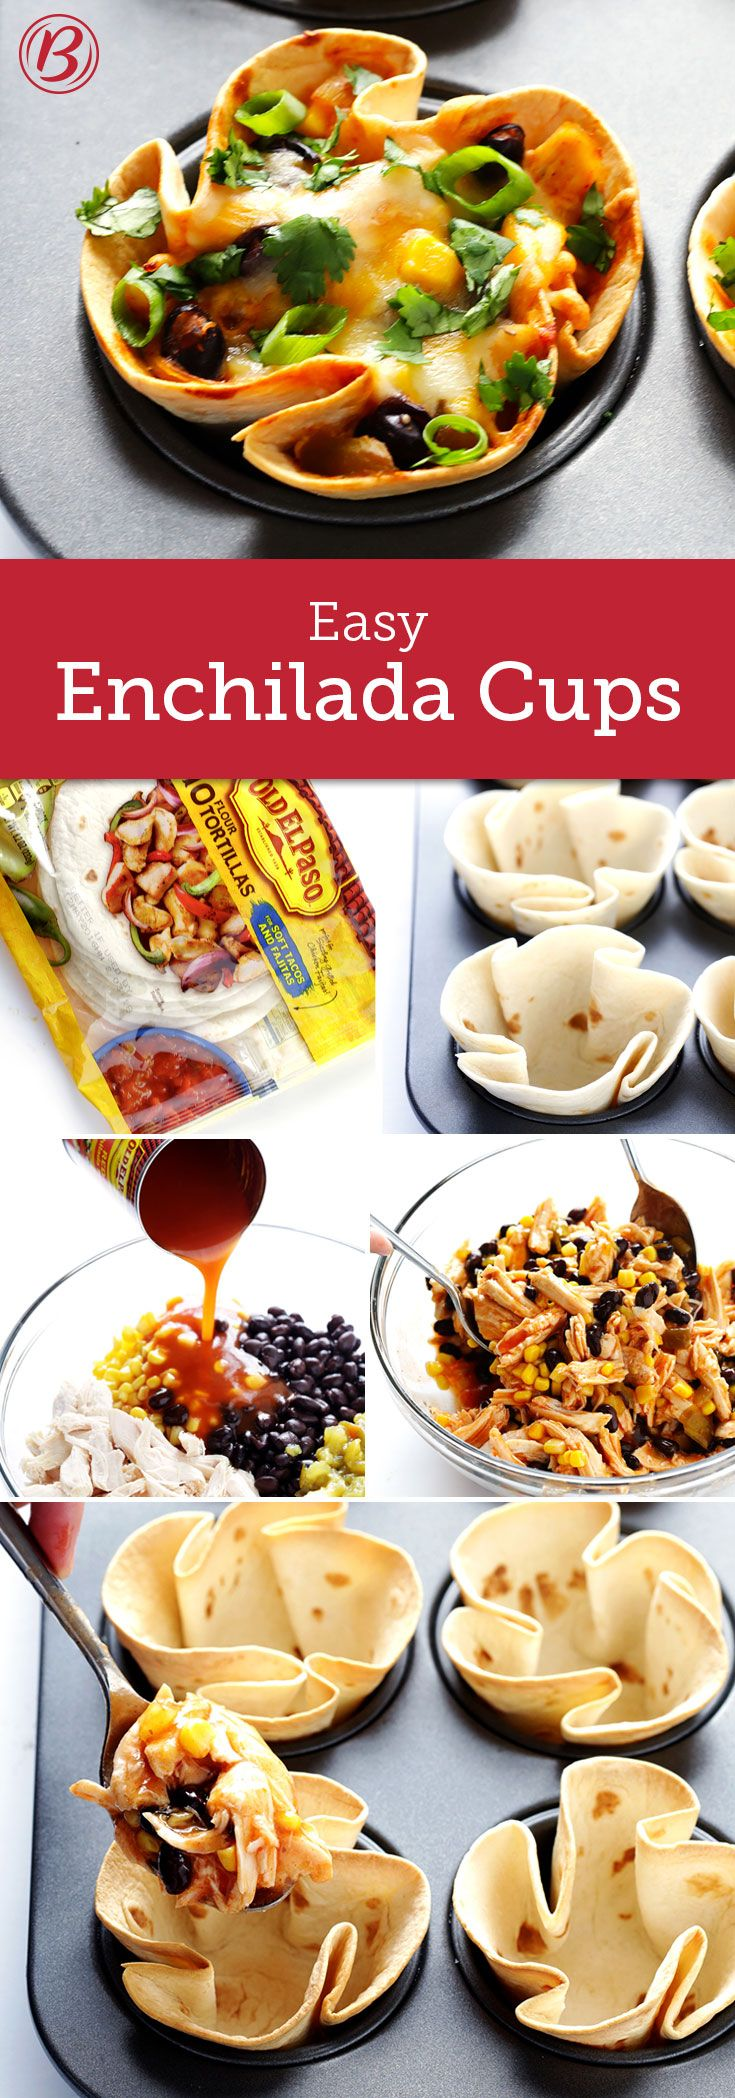 Easy-to-eat enchiladas? Don't mind if we do! All it takes is a package of Old El Paso flour tortillas and your favorite enchilada ingredients, and these delicious cups will be table-ready in no time.